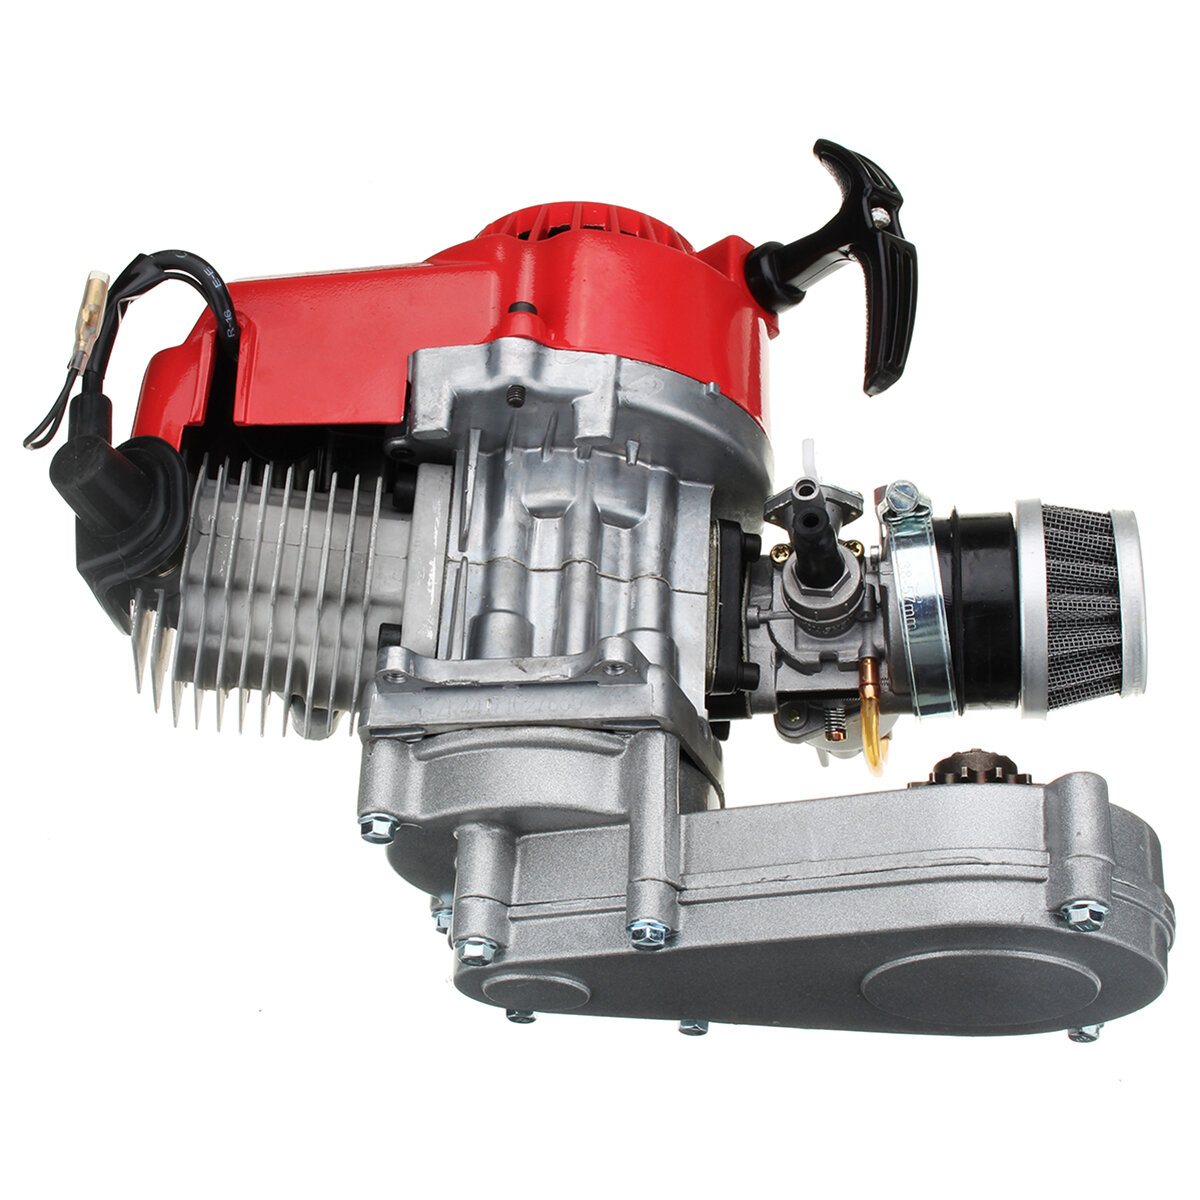 Shop Moto Salon 49cc Engine 2 Stroke Pull Start With Transmission For Mini Moto Dirt Bike Red